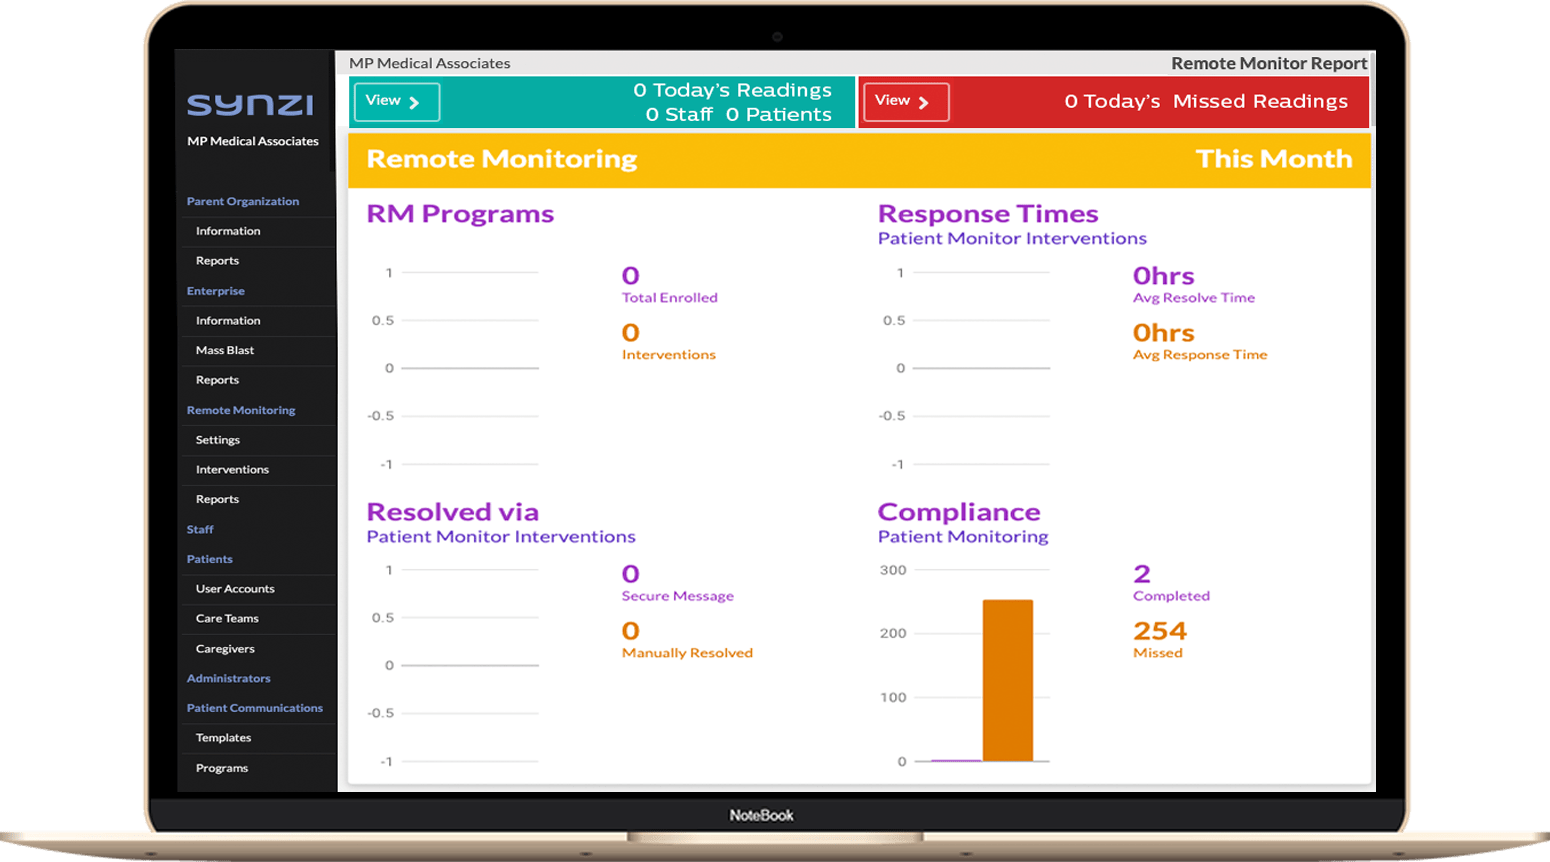 Monitors your at-risk patients on key vital signs and provides alerts which can reduce the risk of ER visits and rehospitalizations